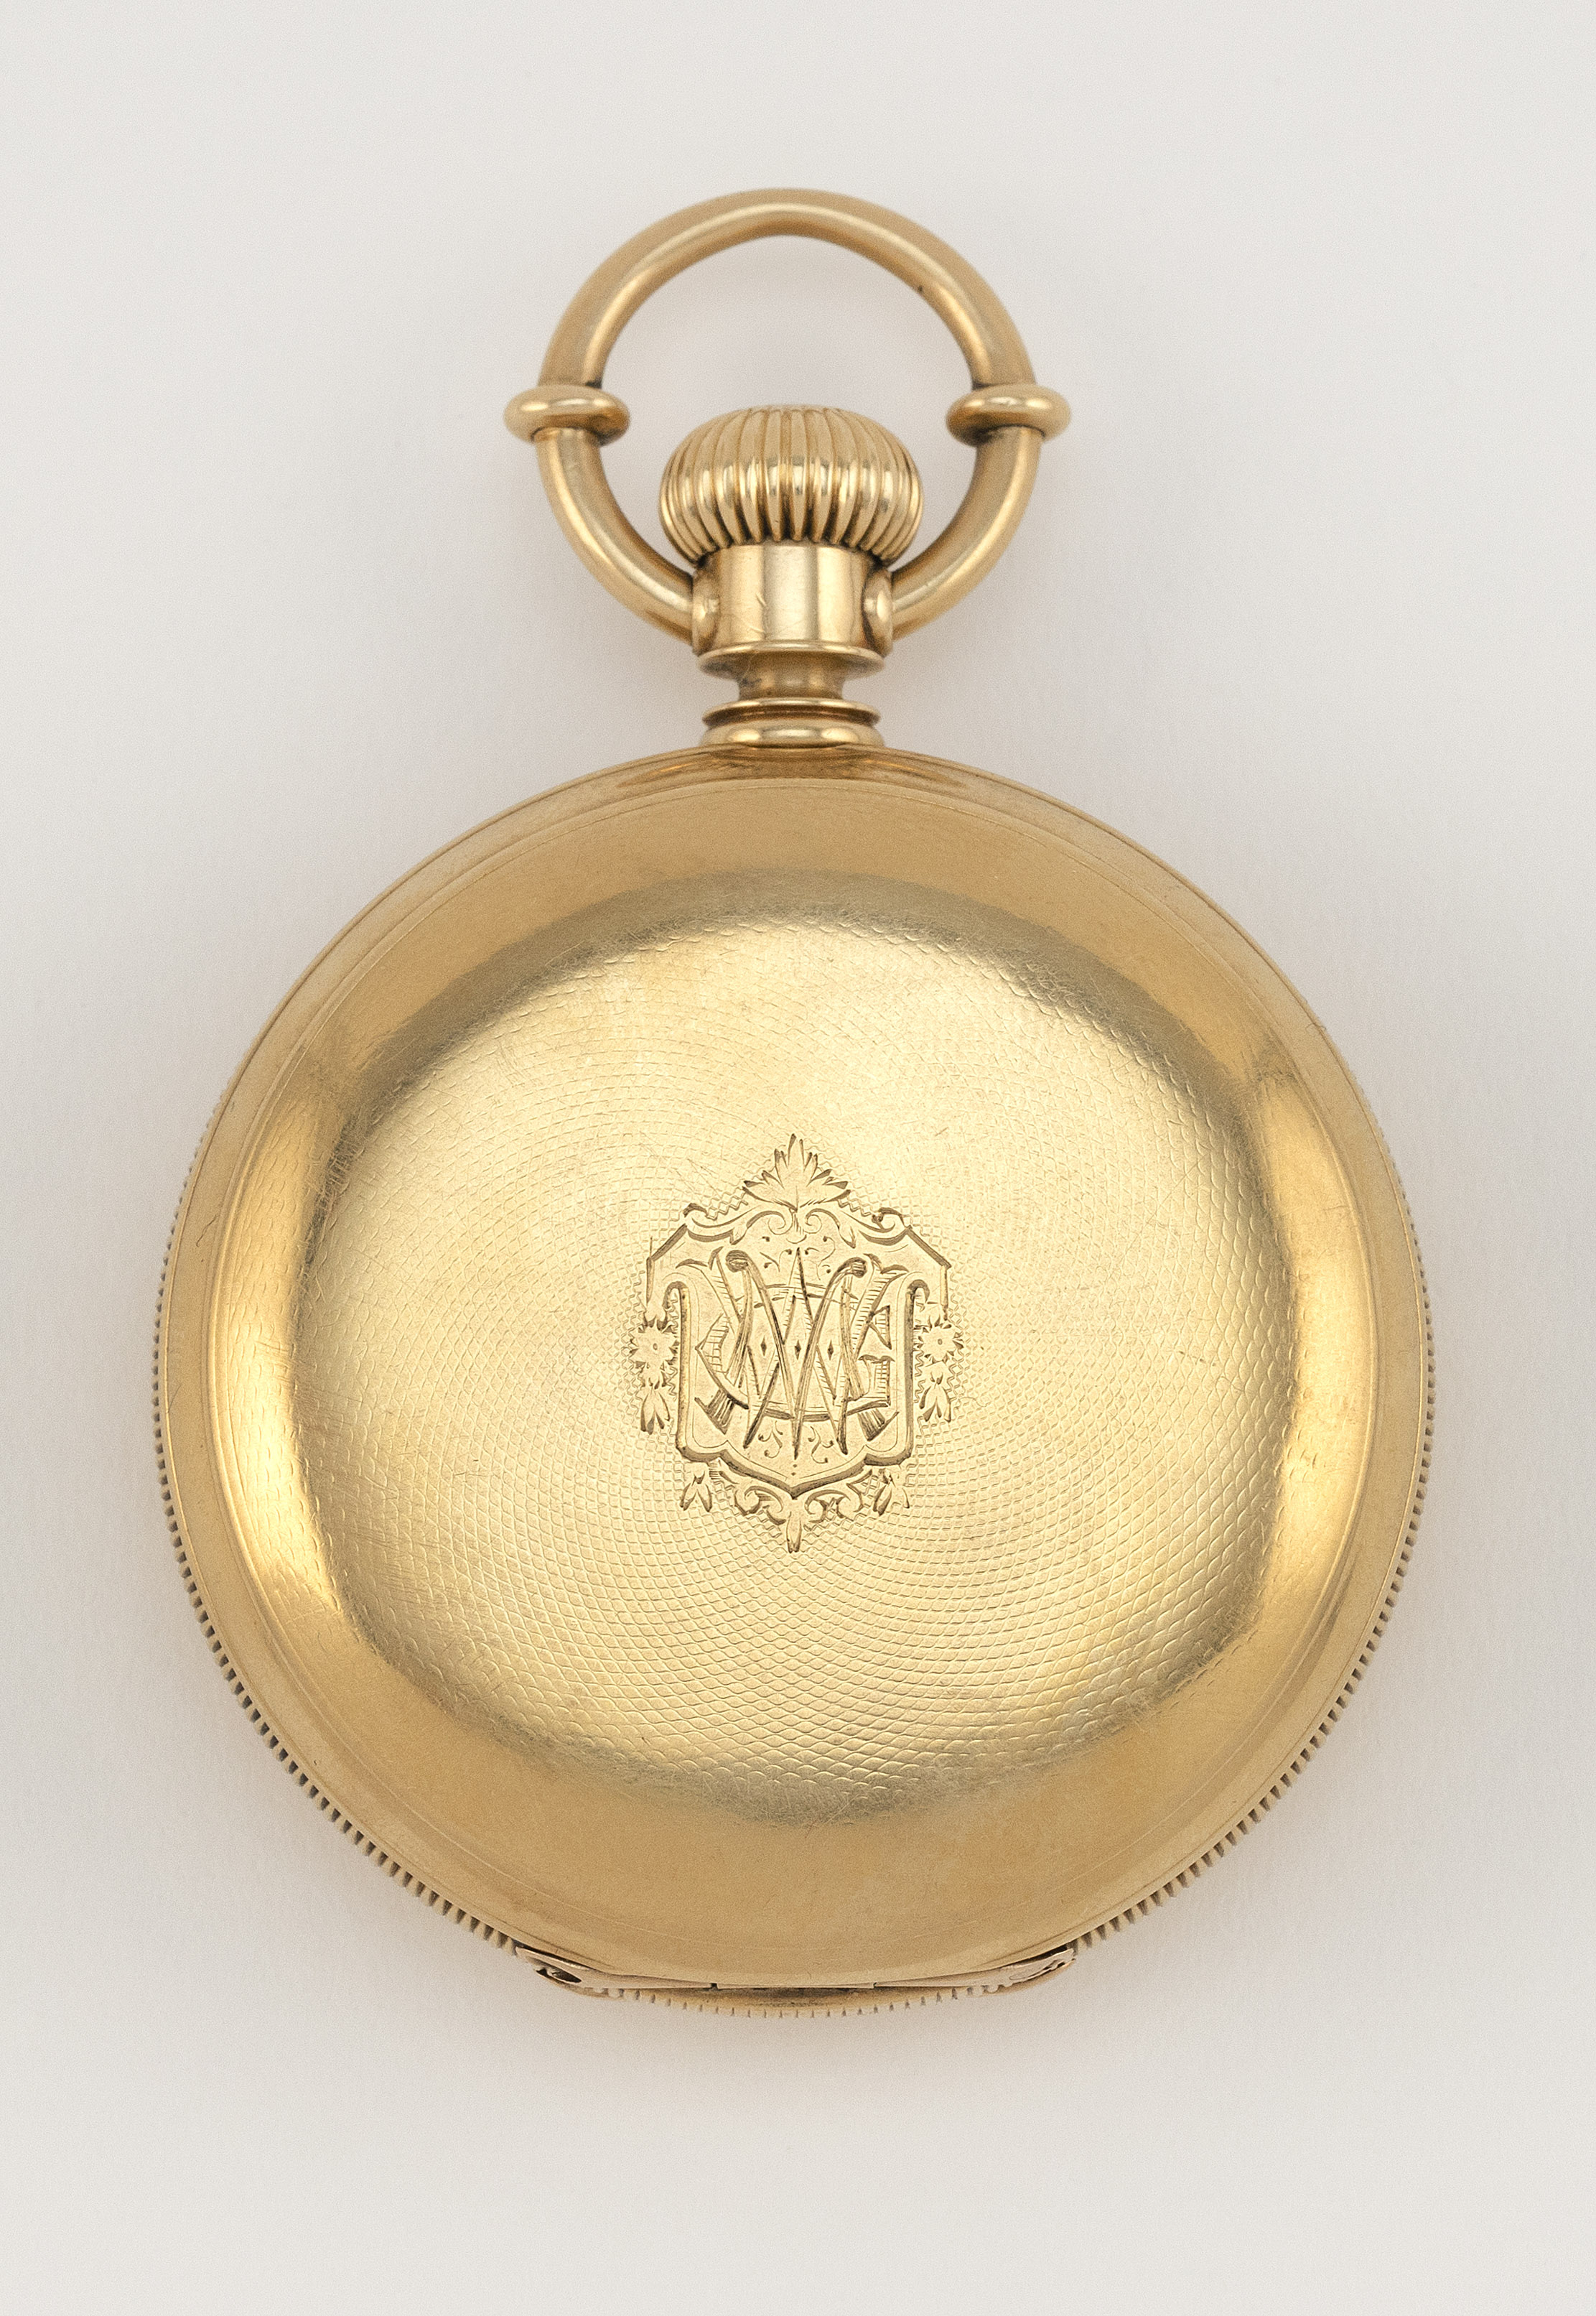 """AMERICAN WATCH CO. 18KT GOLD CASED POCKET WATCH 1876 Diameter of case 2"""". Total weight 87.06 dwt."""